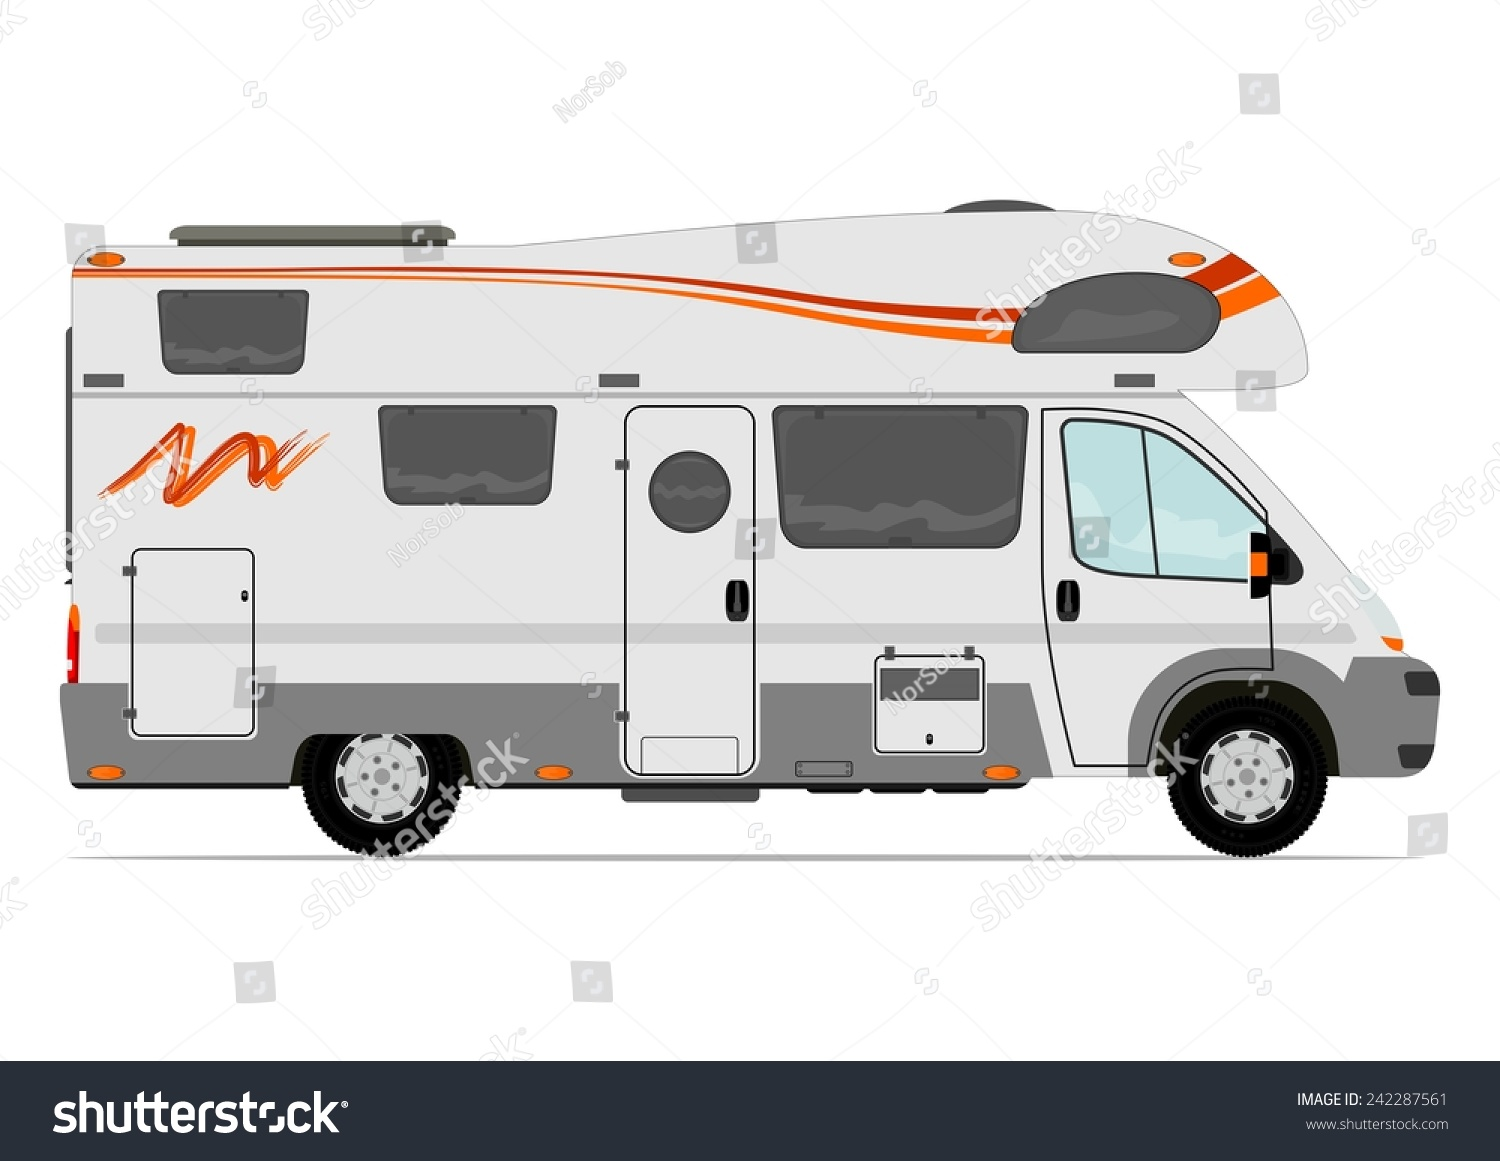 Modern Camper Van Vector Without The Gradient In A Single Layer